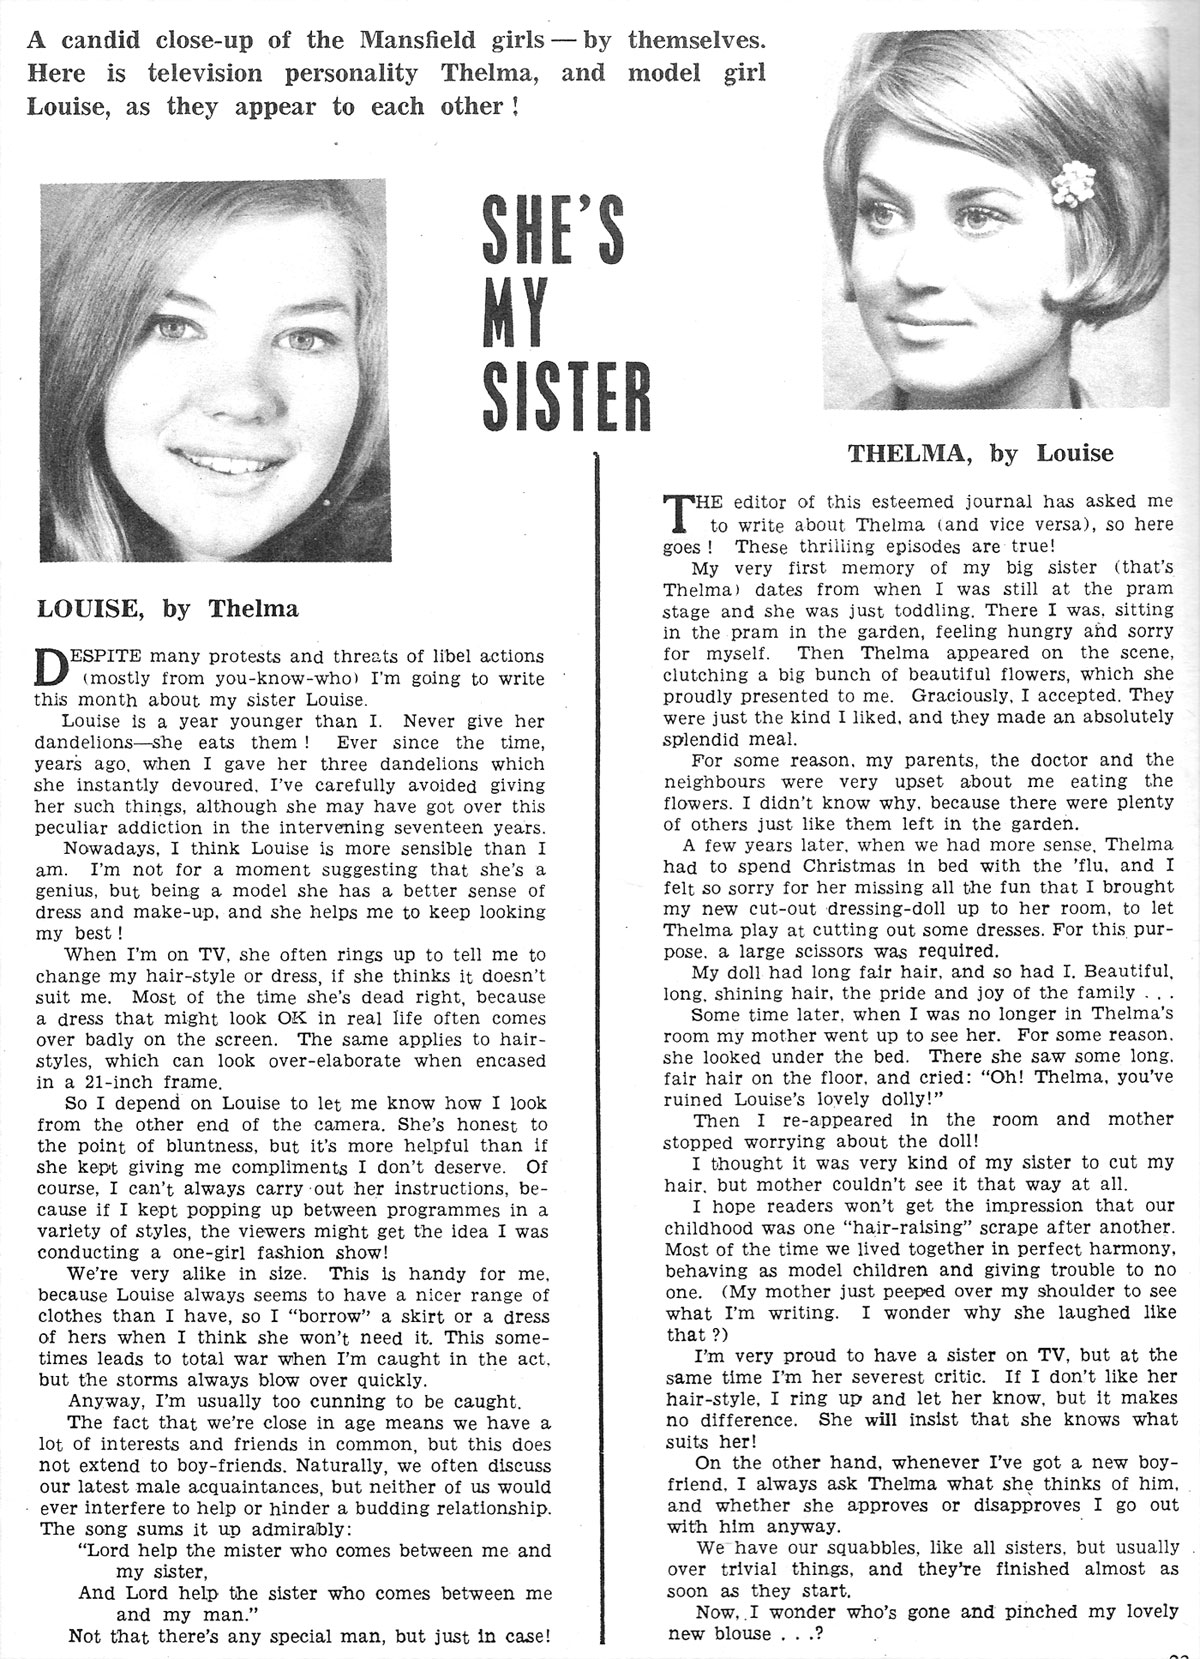 thelma_louise_mansfield_1966_ireland_article